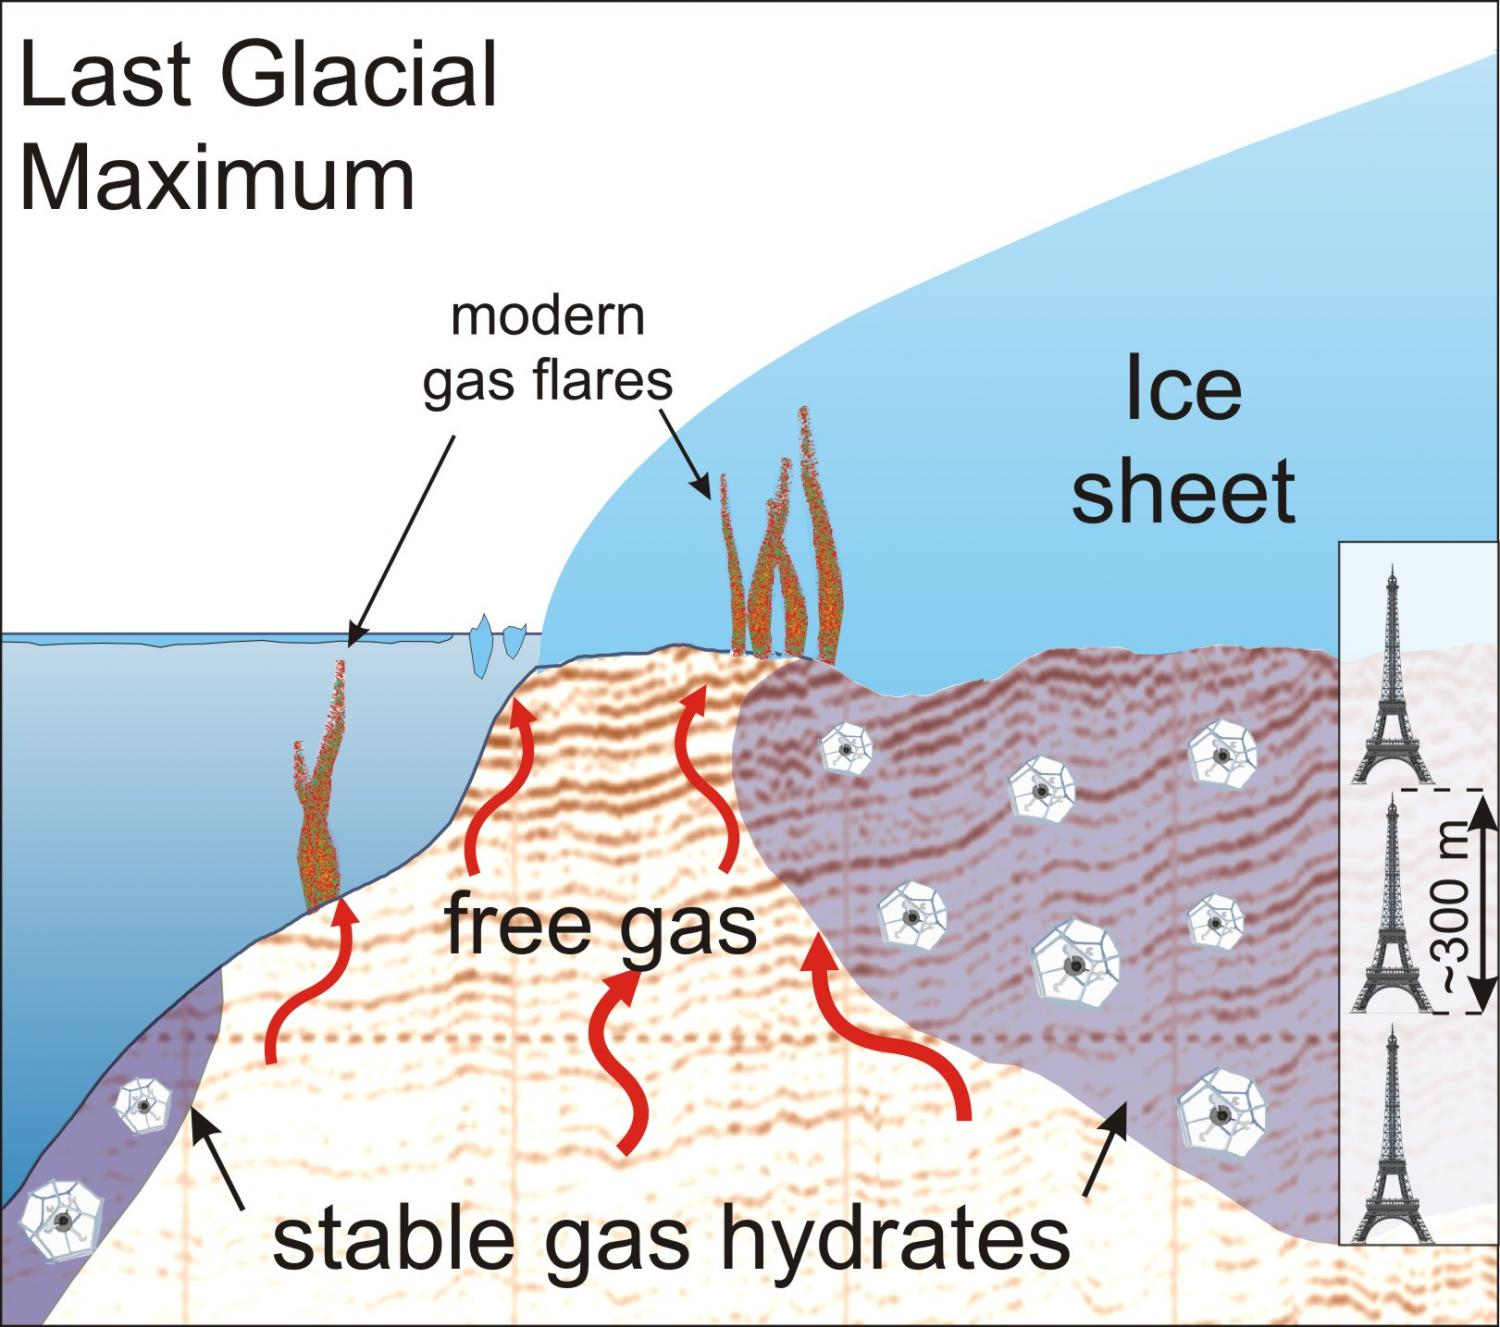 sheets be hiding vast reservoirs of powerful greenhouse gas ice sheets be hiding vast reservoirs of powerful greenhouse gas